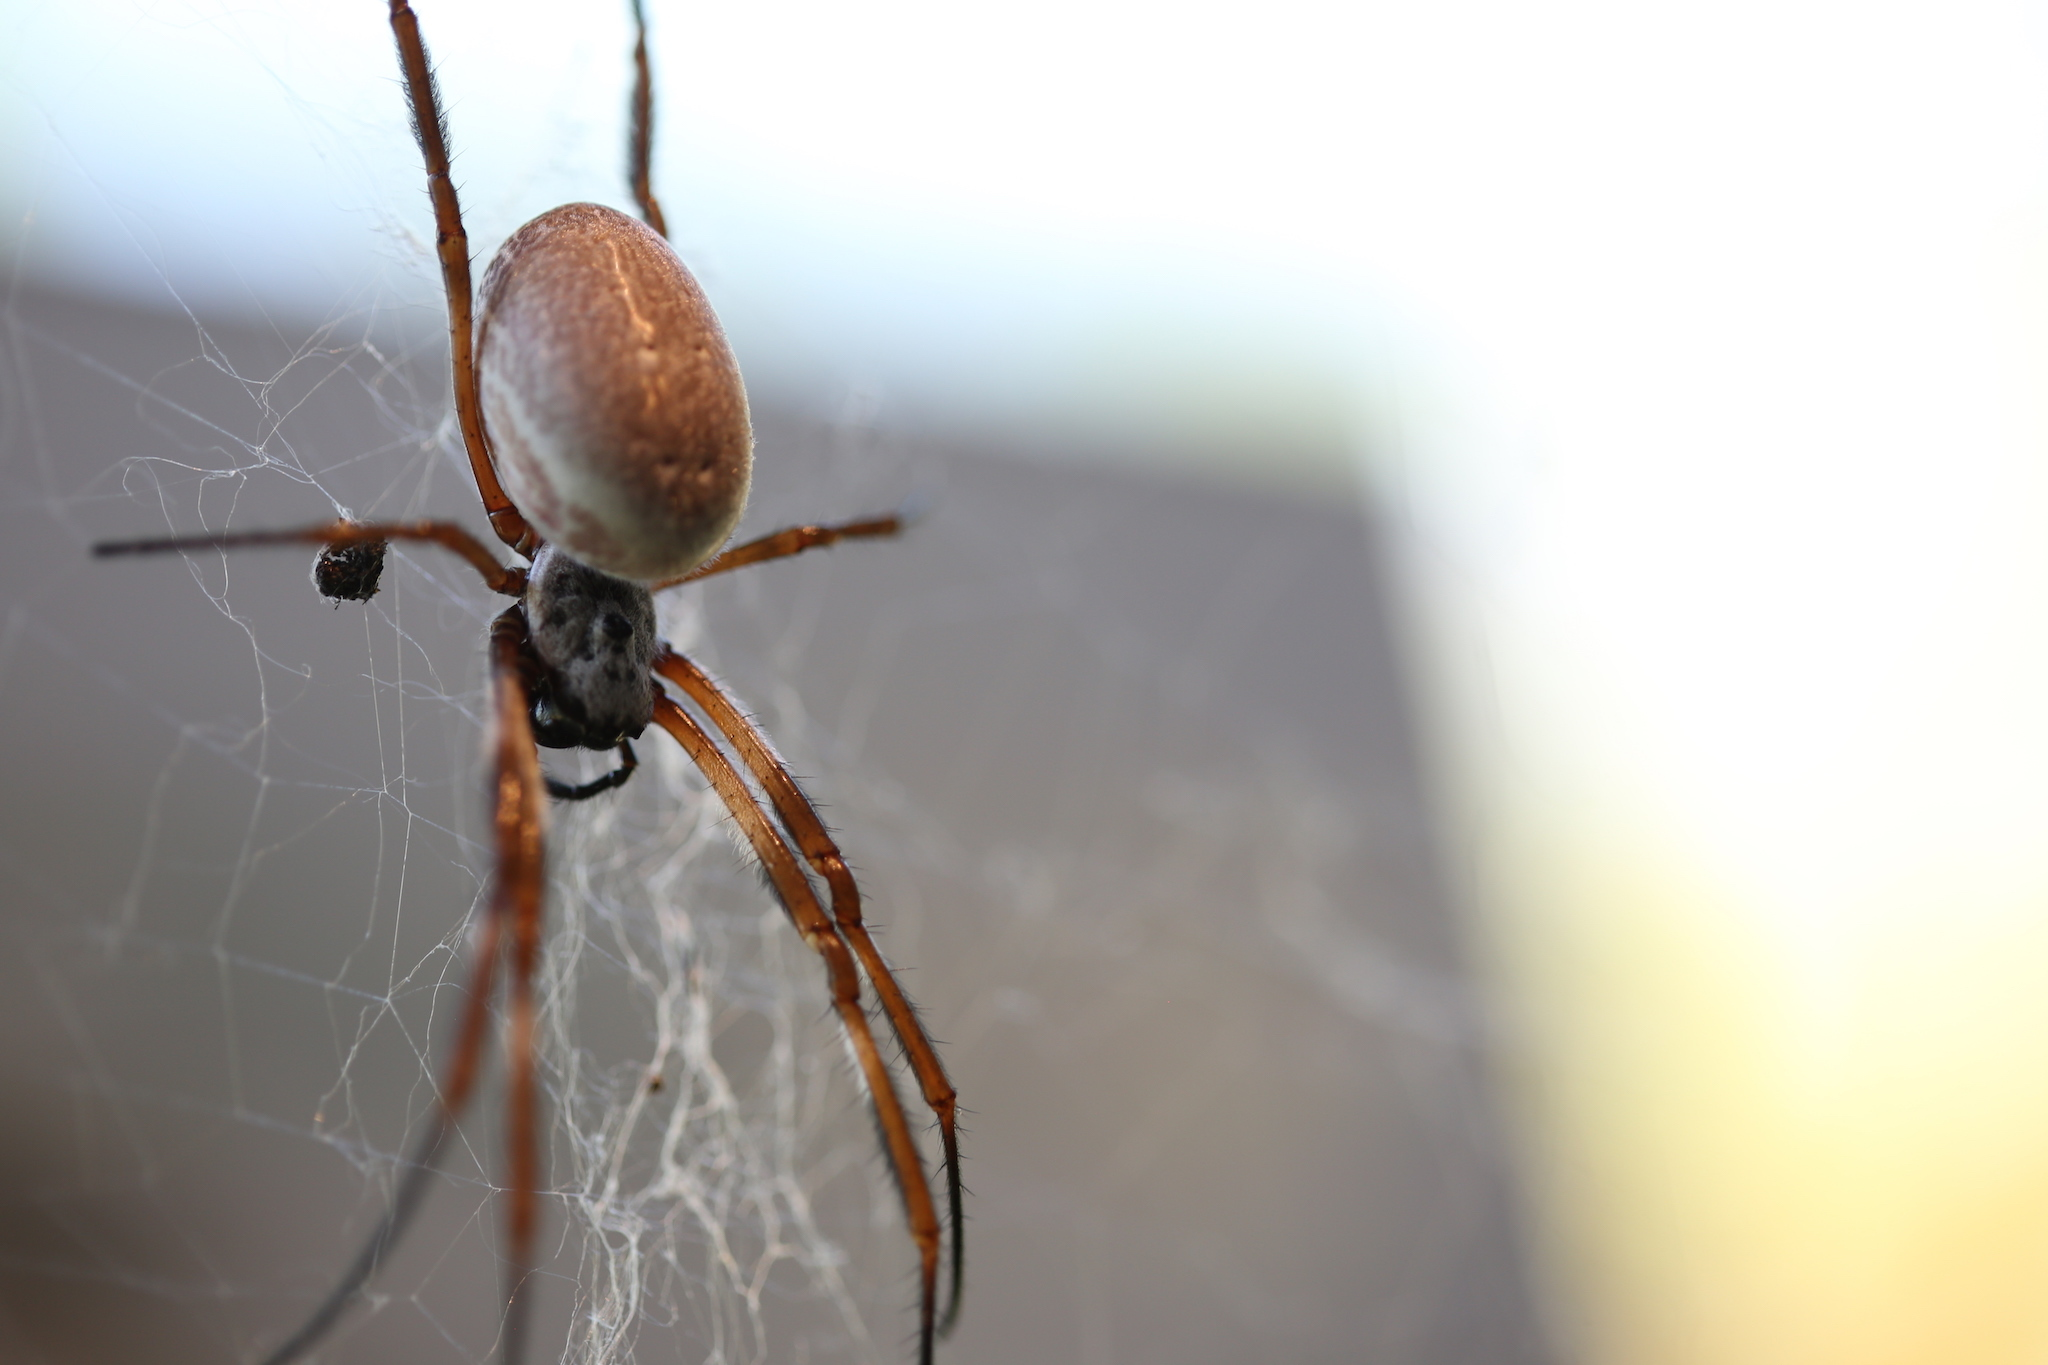 Golden Orb Spider, ZSL, London Zoo